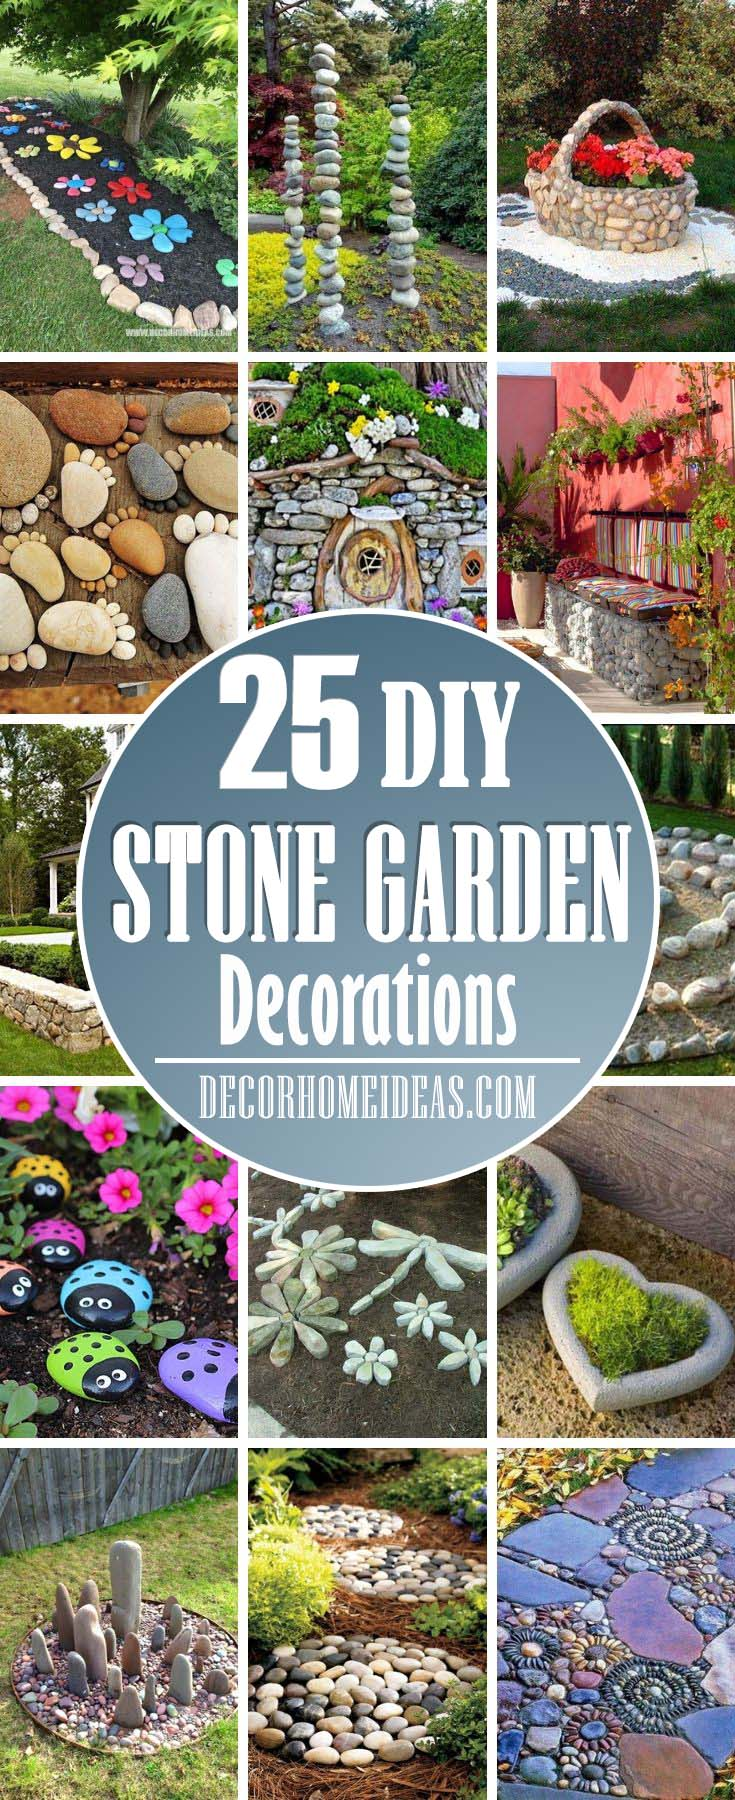 Best Stone Garden Decorations. Spruce up your garden with these cute stone and rocks DIY decorations. #garden #rocks #ideas #decor #decorhomeideas